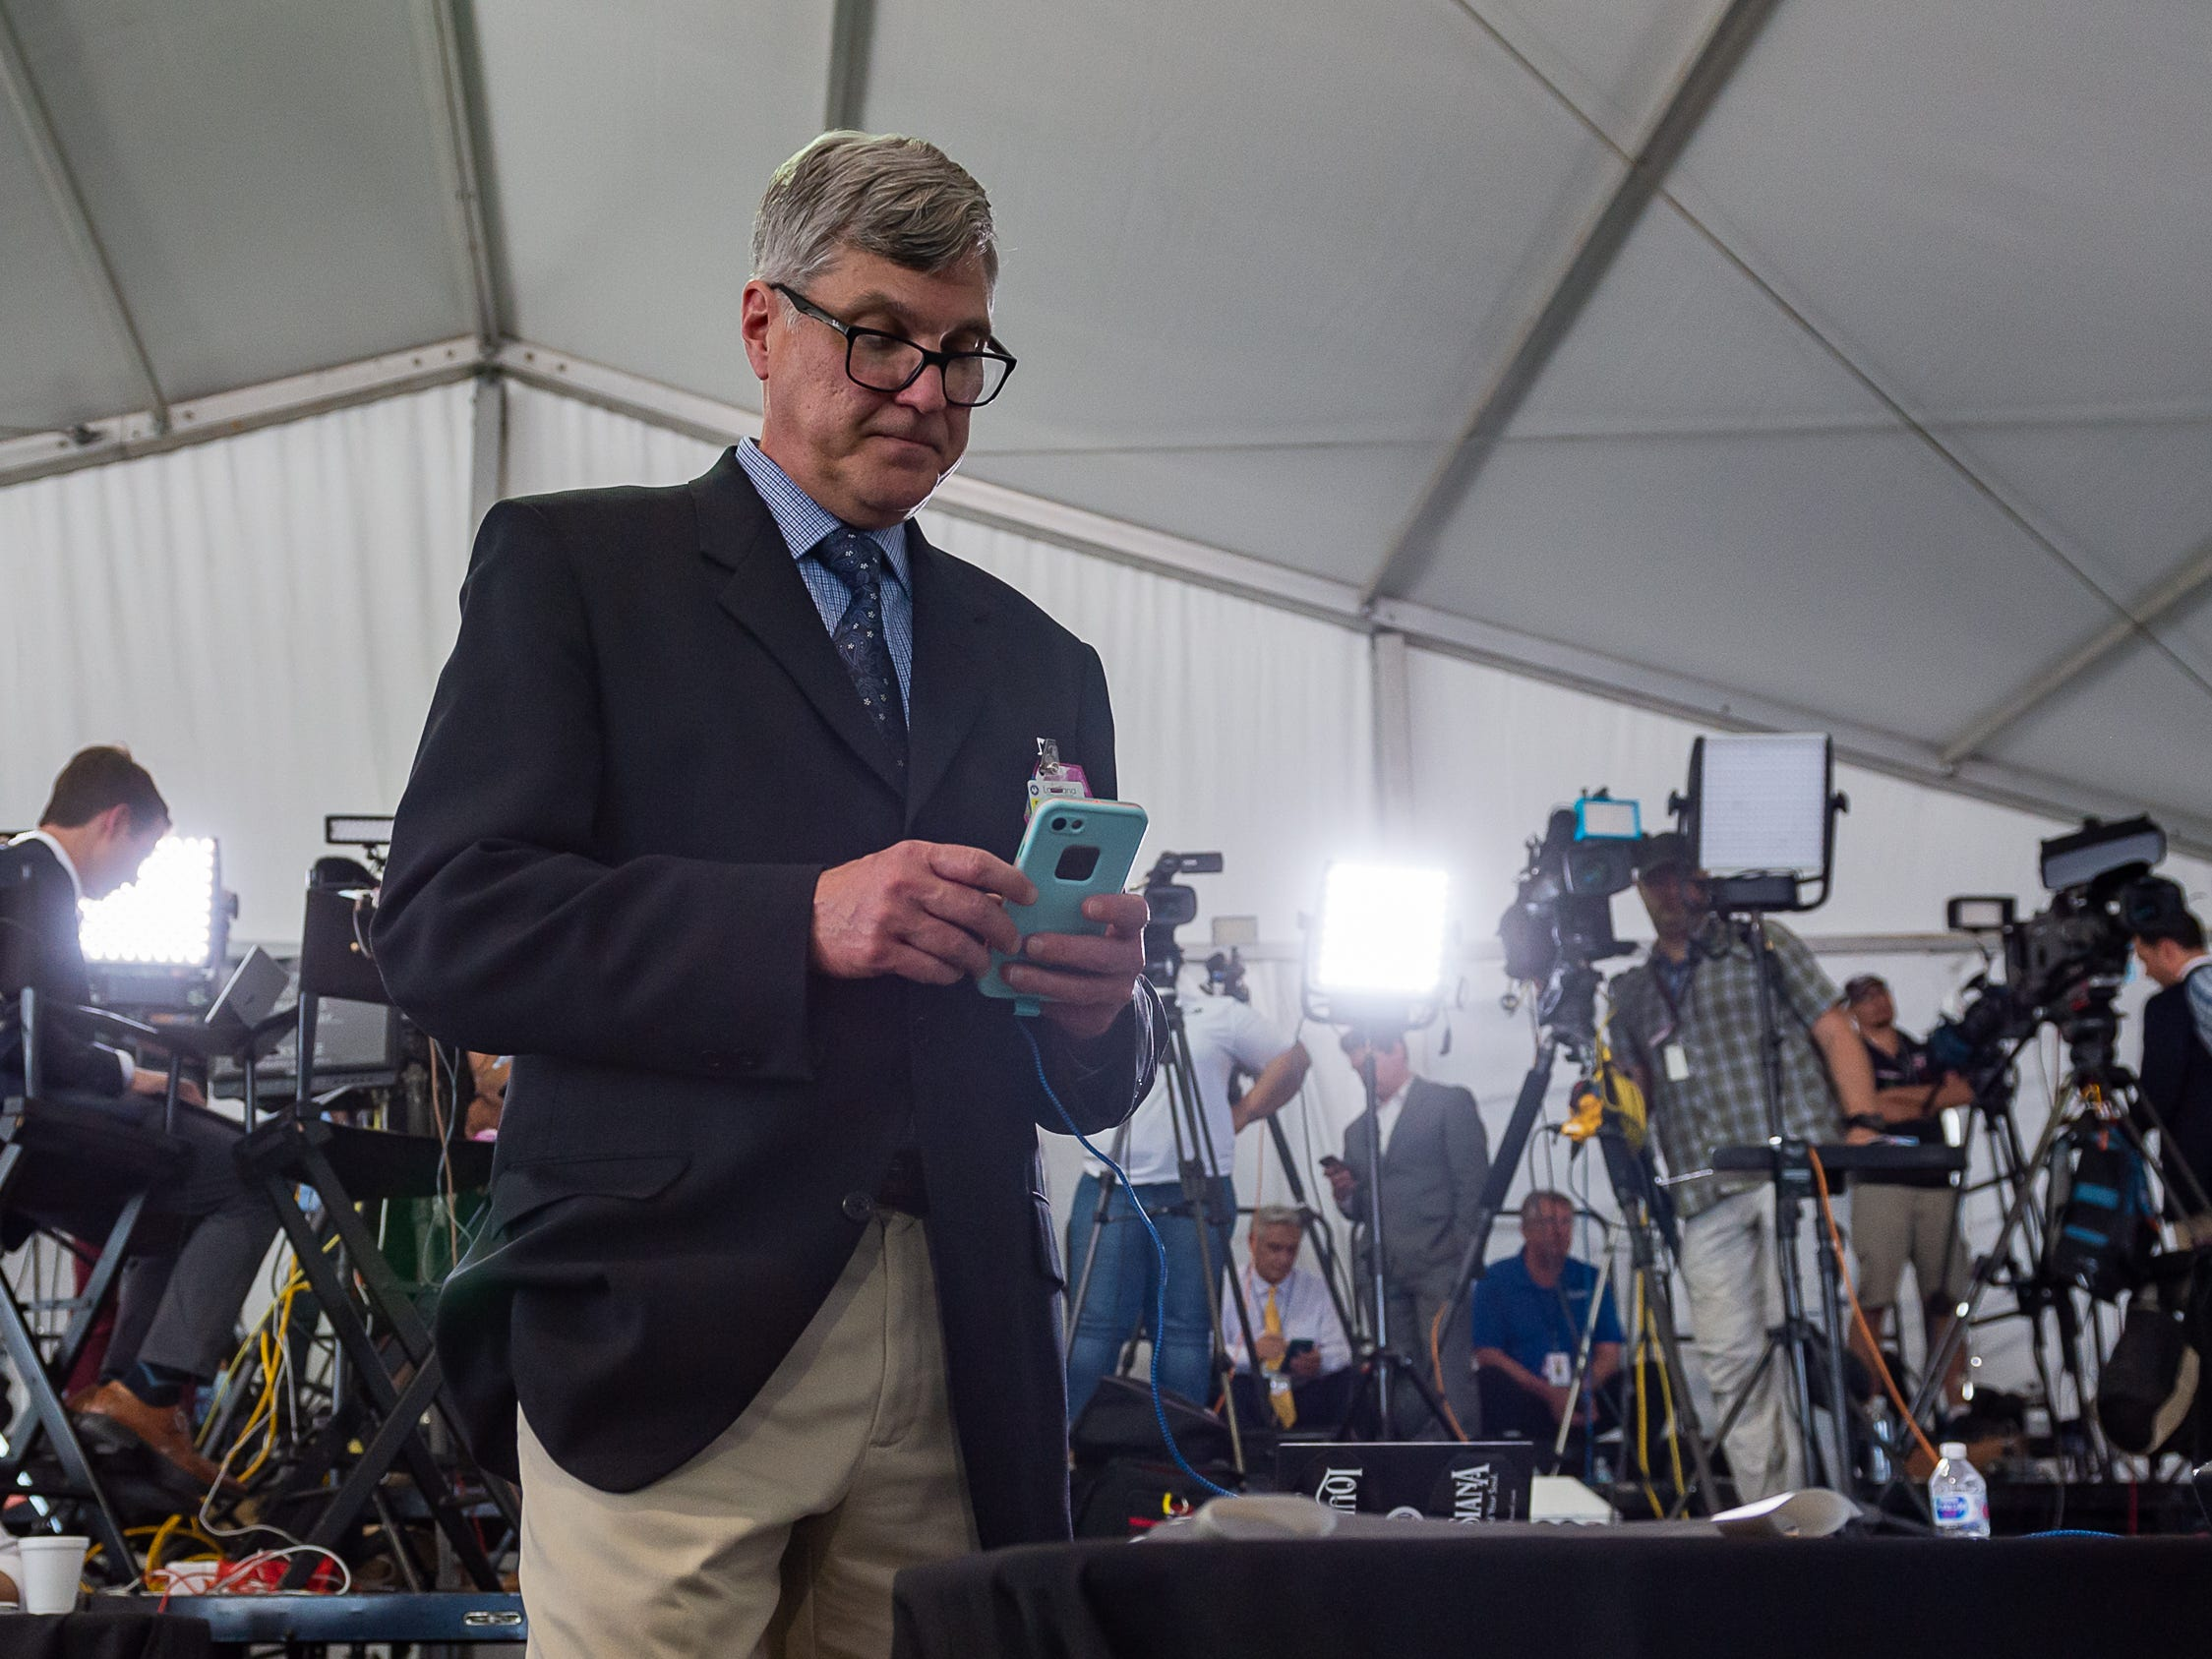 Greg Hilburn on asignment as President Donald Trump speaking at Cameron LNG Export Terminal in Hackberry, LA. Tuesday, May 14, 2019.